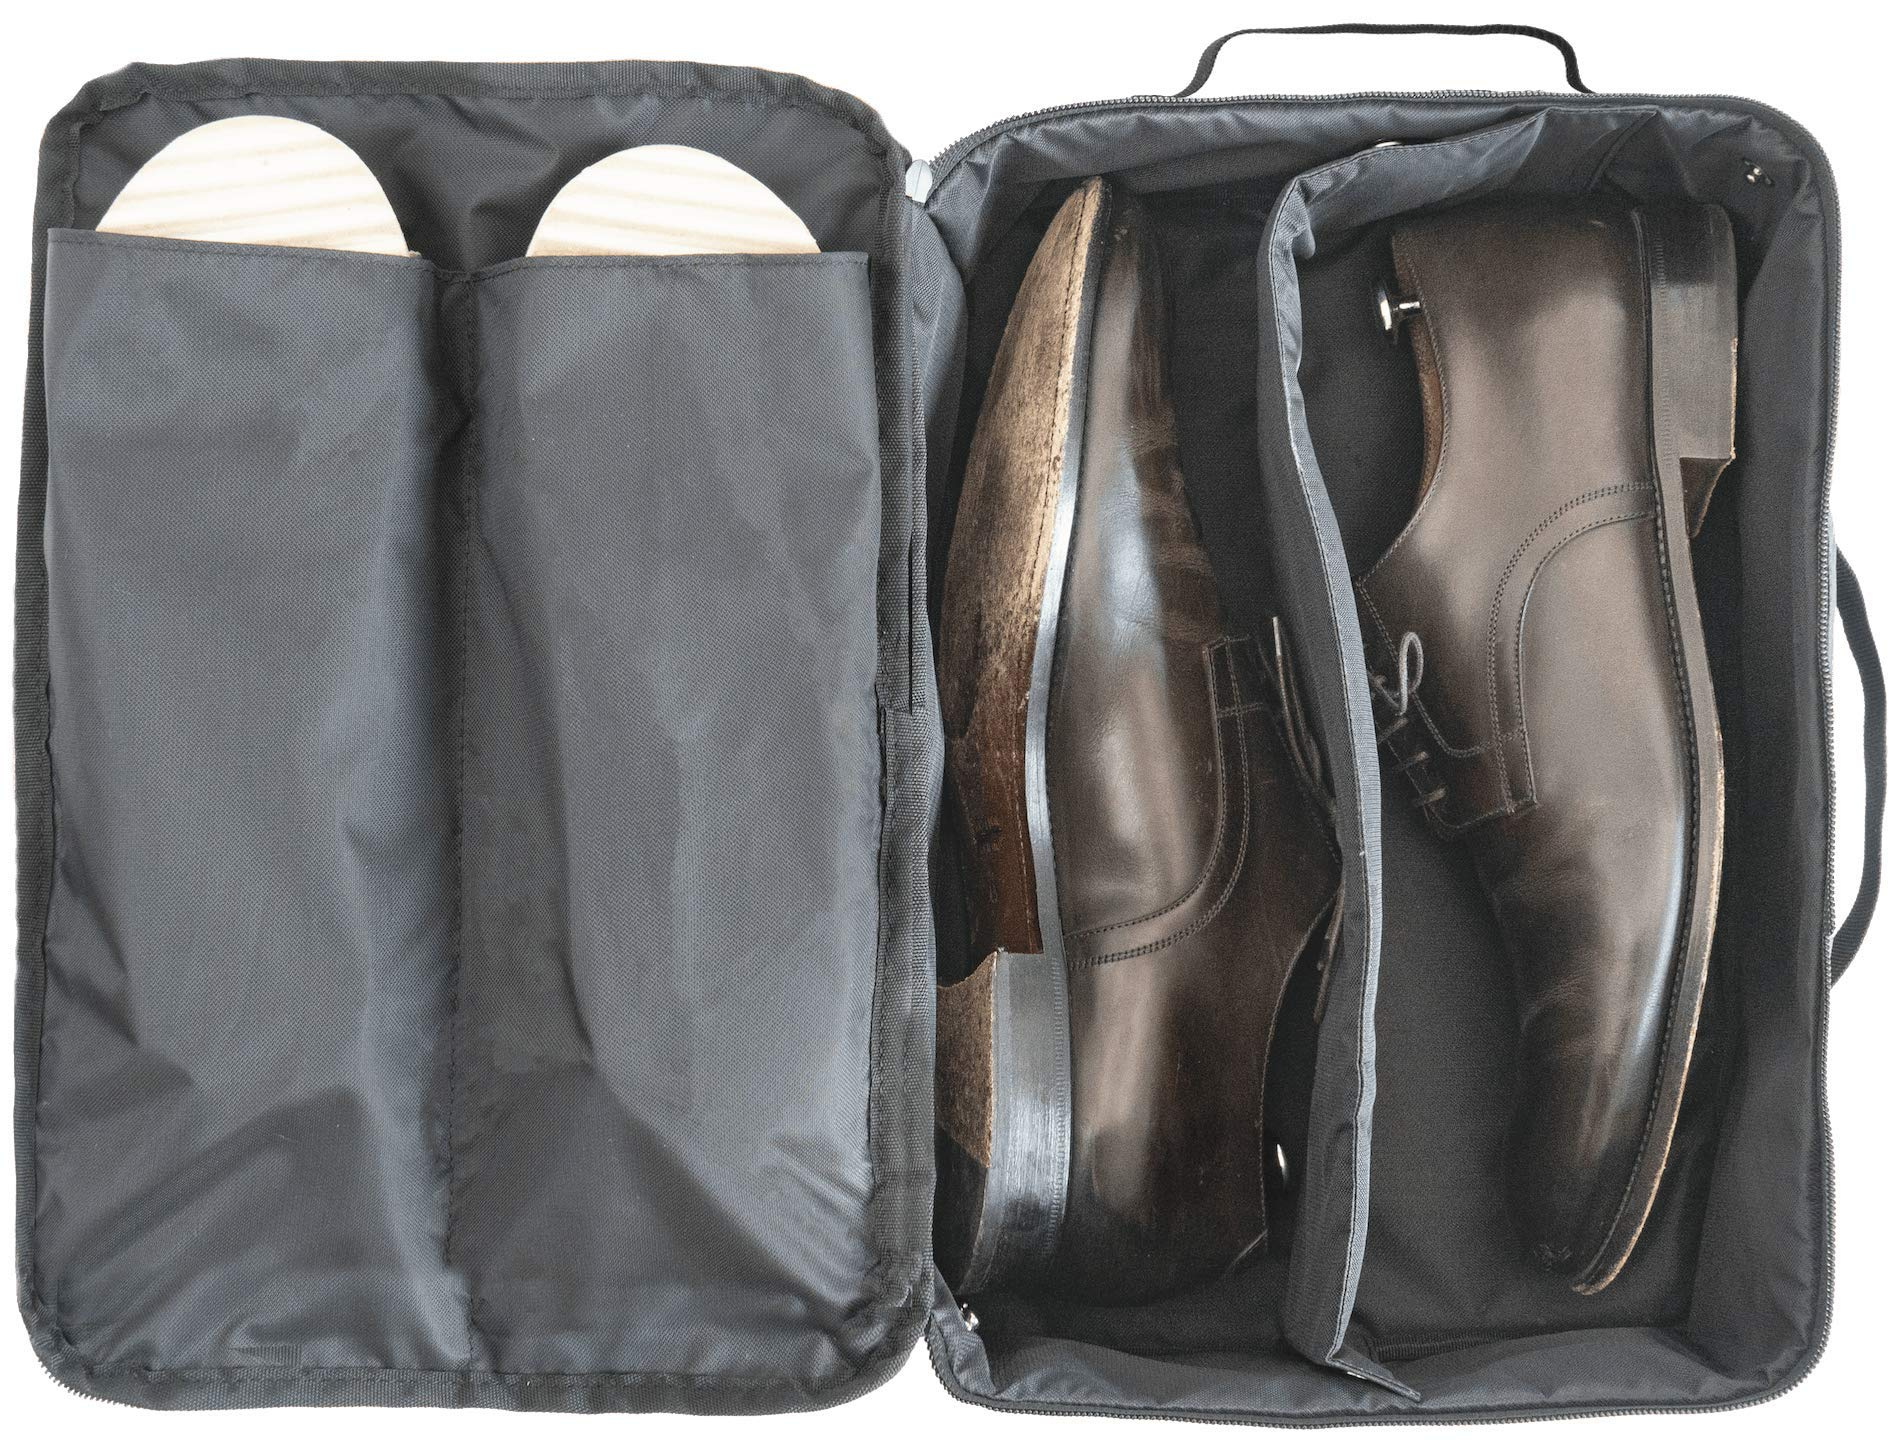 DEGELER Shoe Bag for effortless traveling | Water-resistant Shoe organizer for carry-on luggage travel accessory by DEGELER